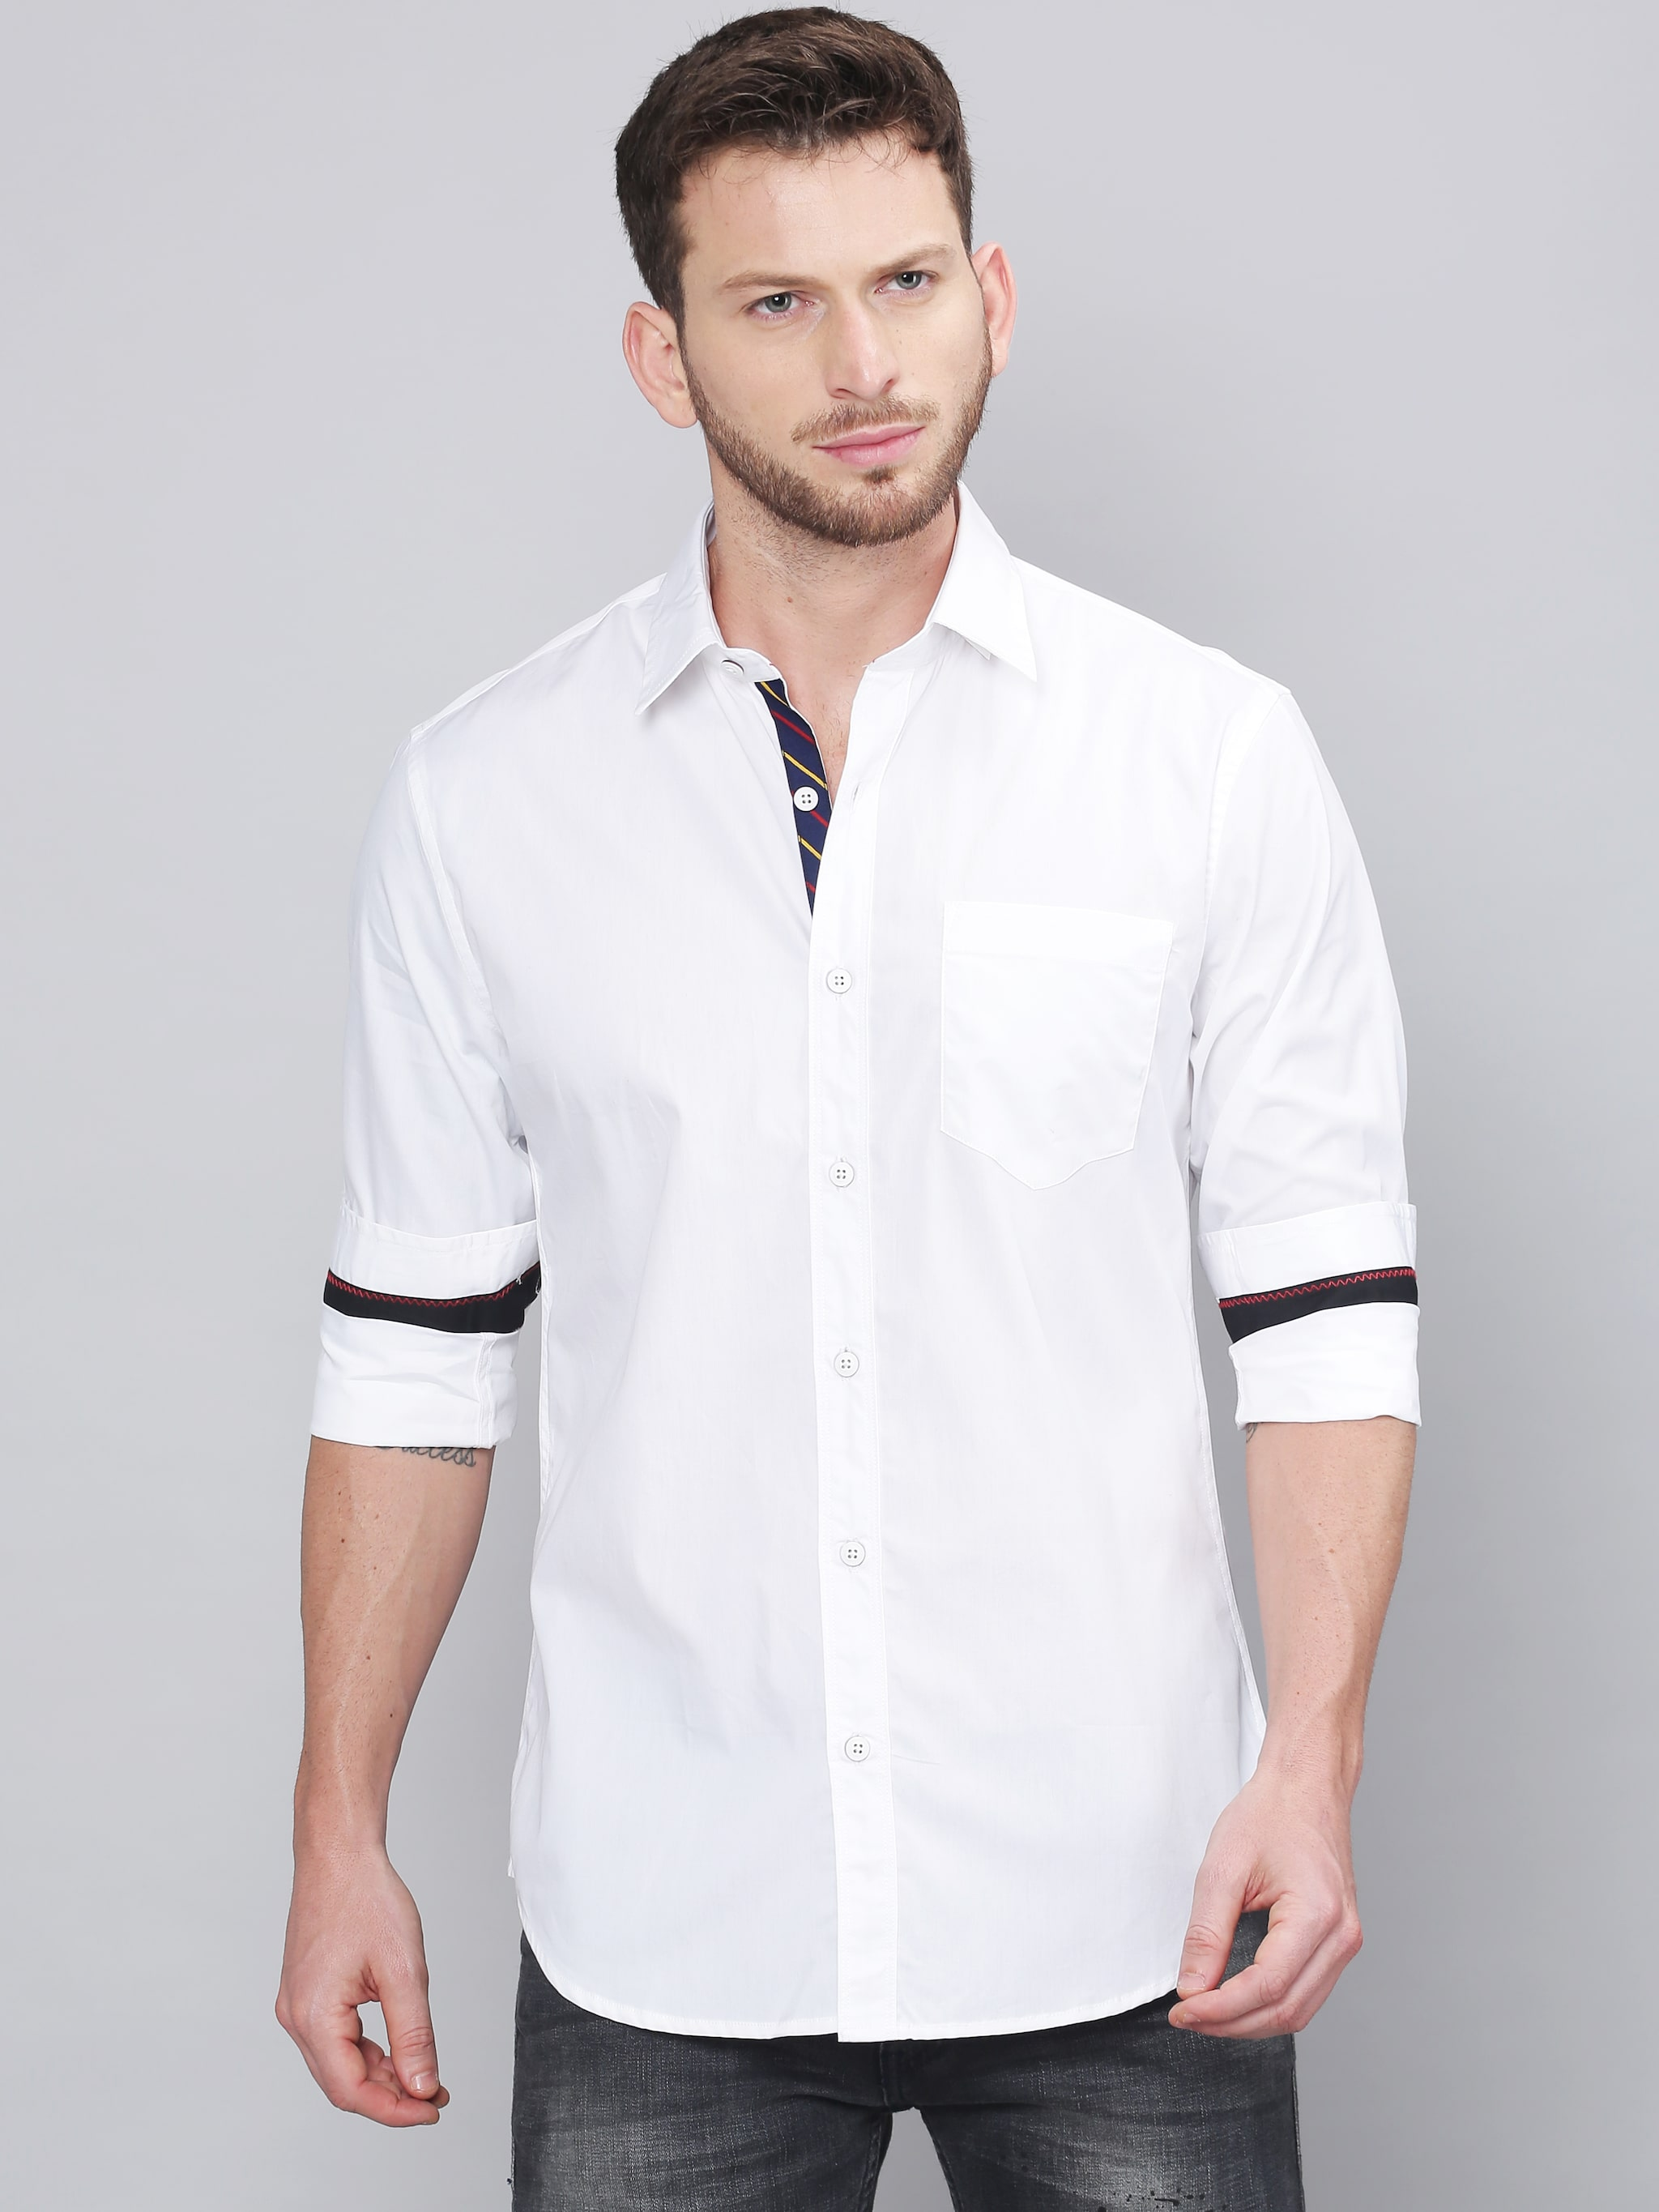 Solid Styles Men White Solid Regular Fit Casual Shirt